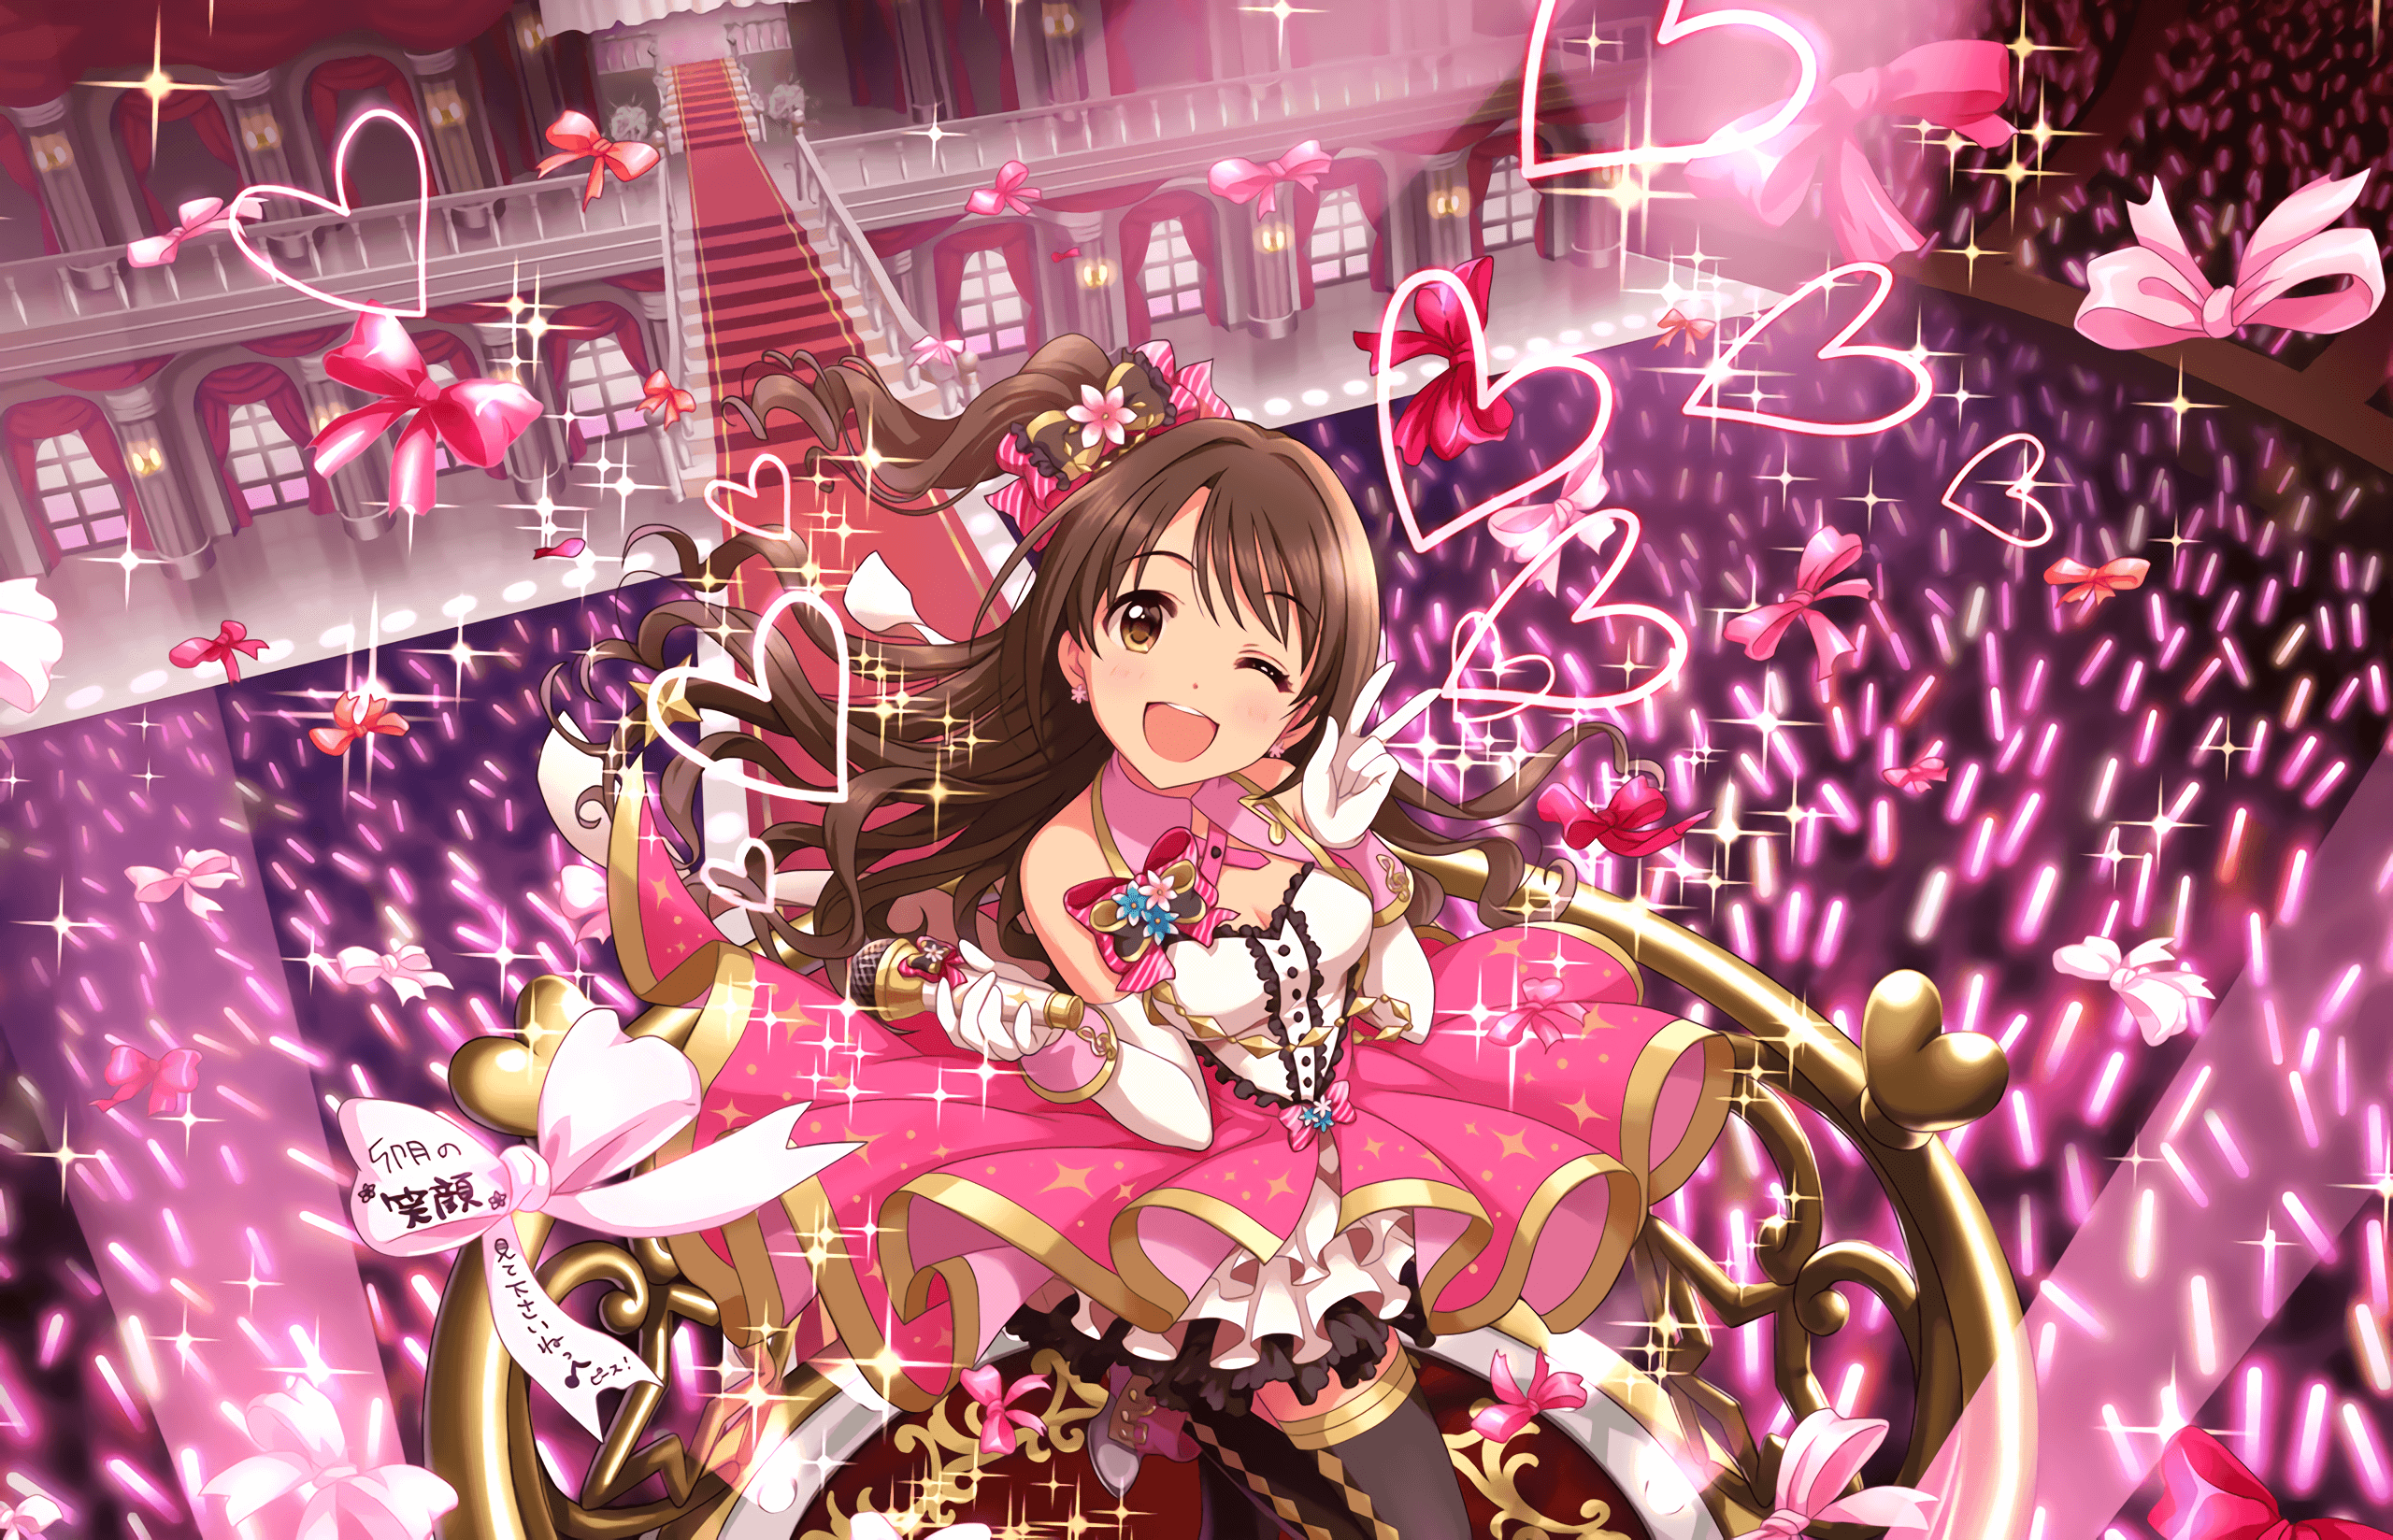 Dance Girl Wallpaper Hd Cinderella Producers Card Ssr Shimamura Uzuki Quot Stage Of